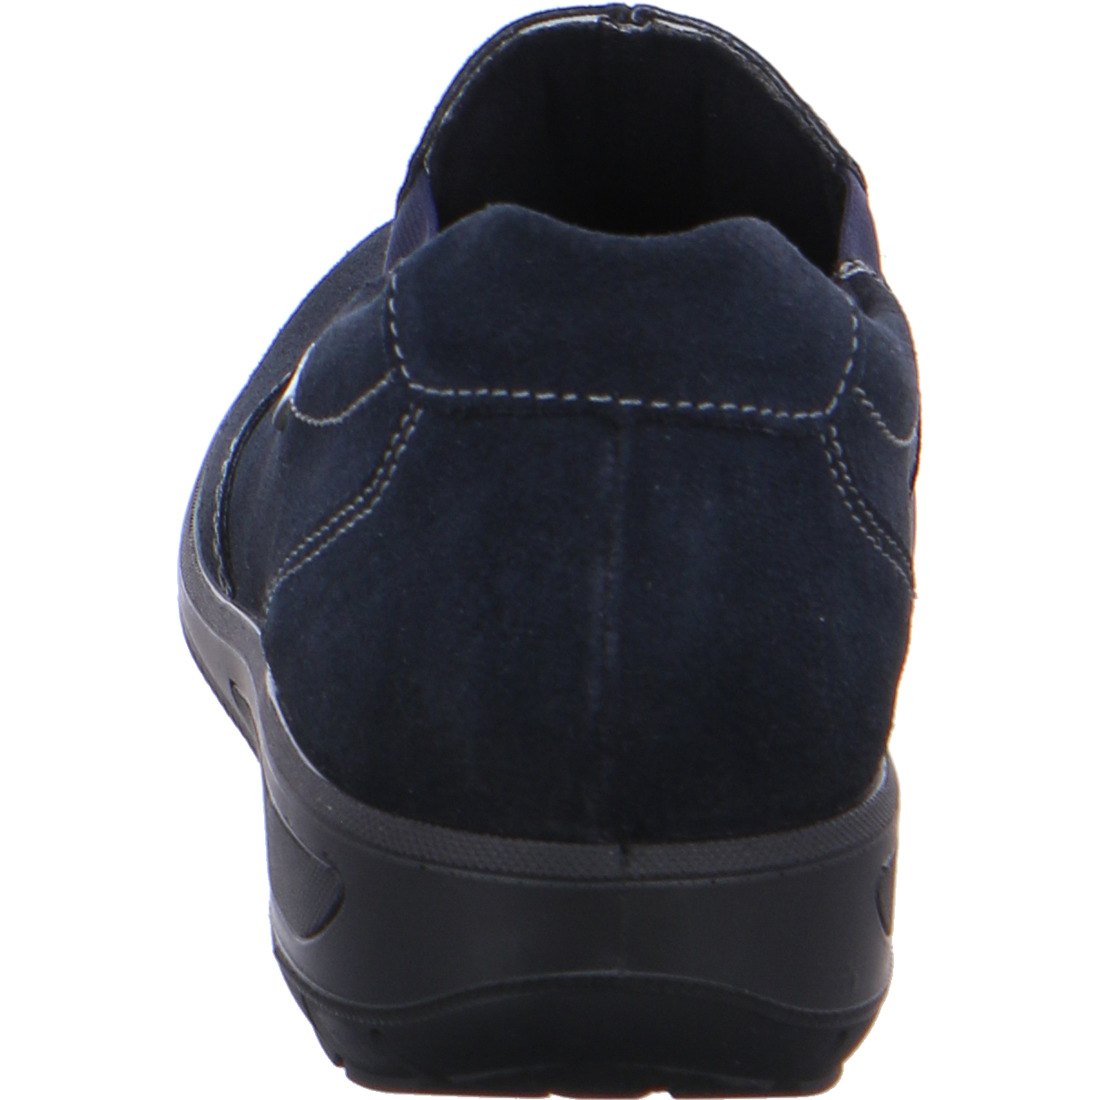 san francisco 303d9 9e422 ara Gore Tex Slipper